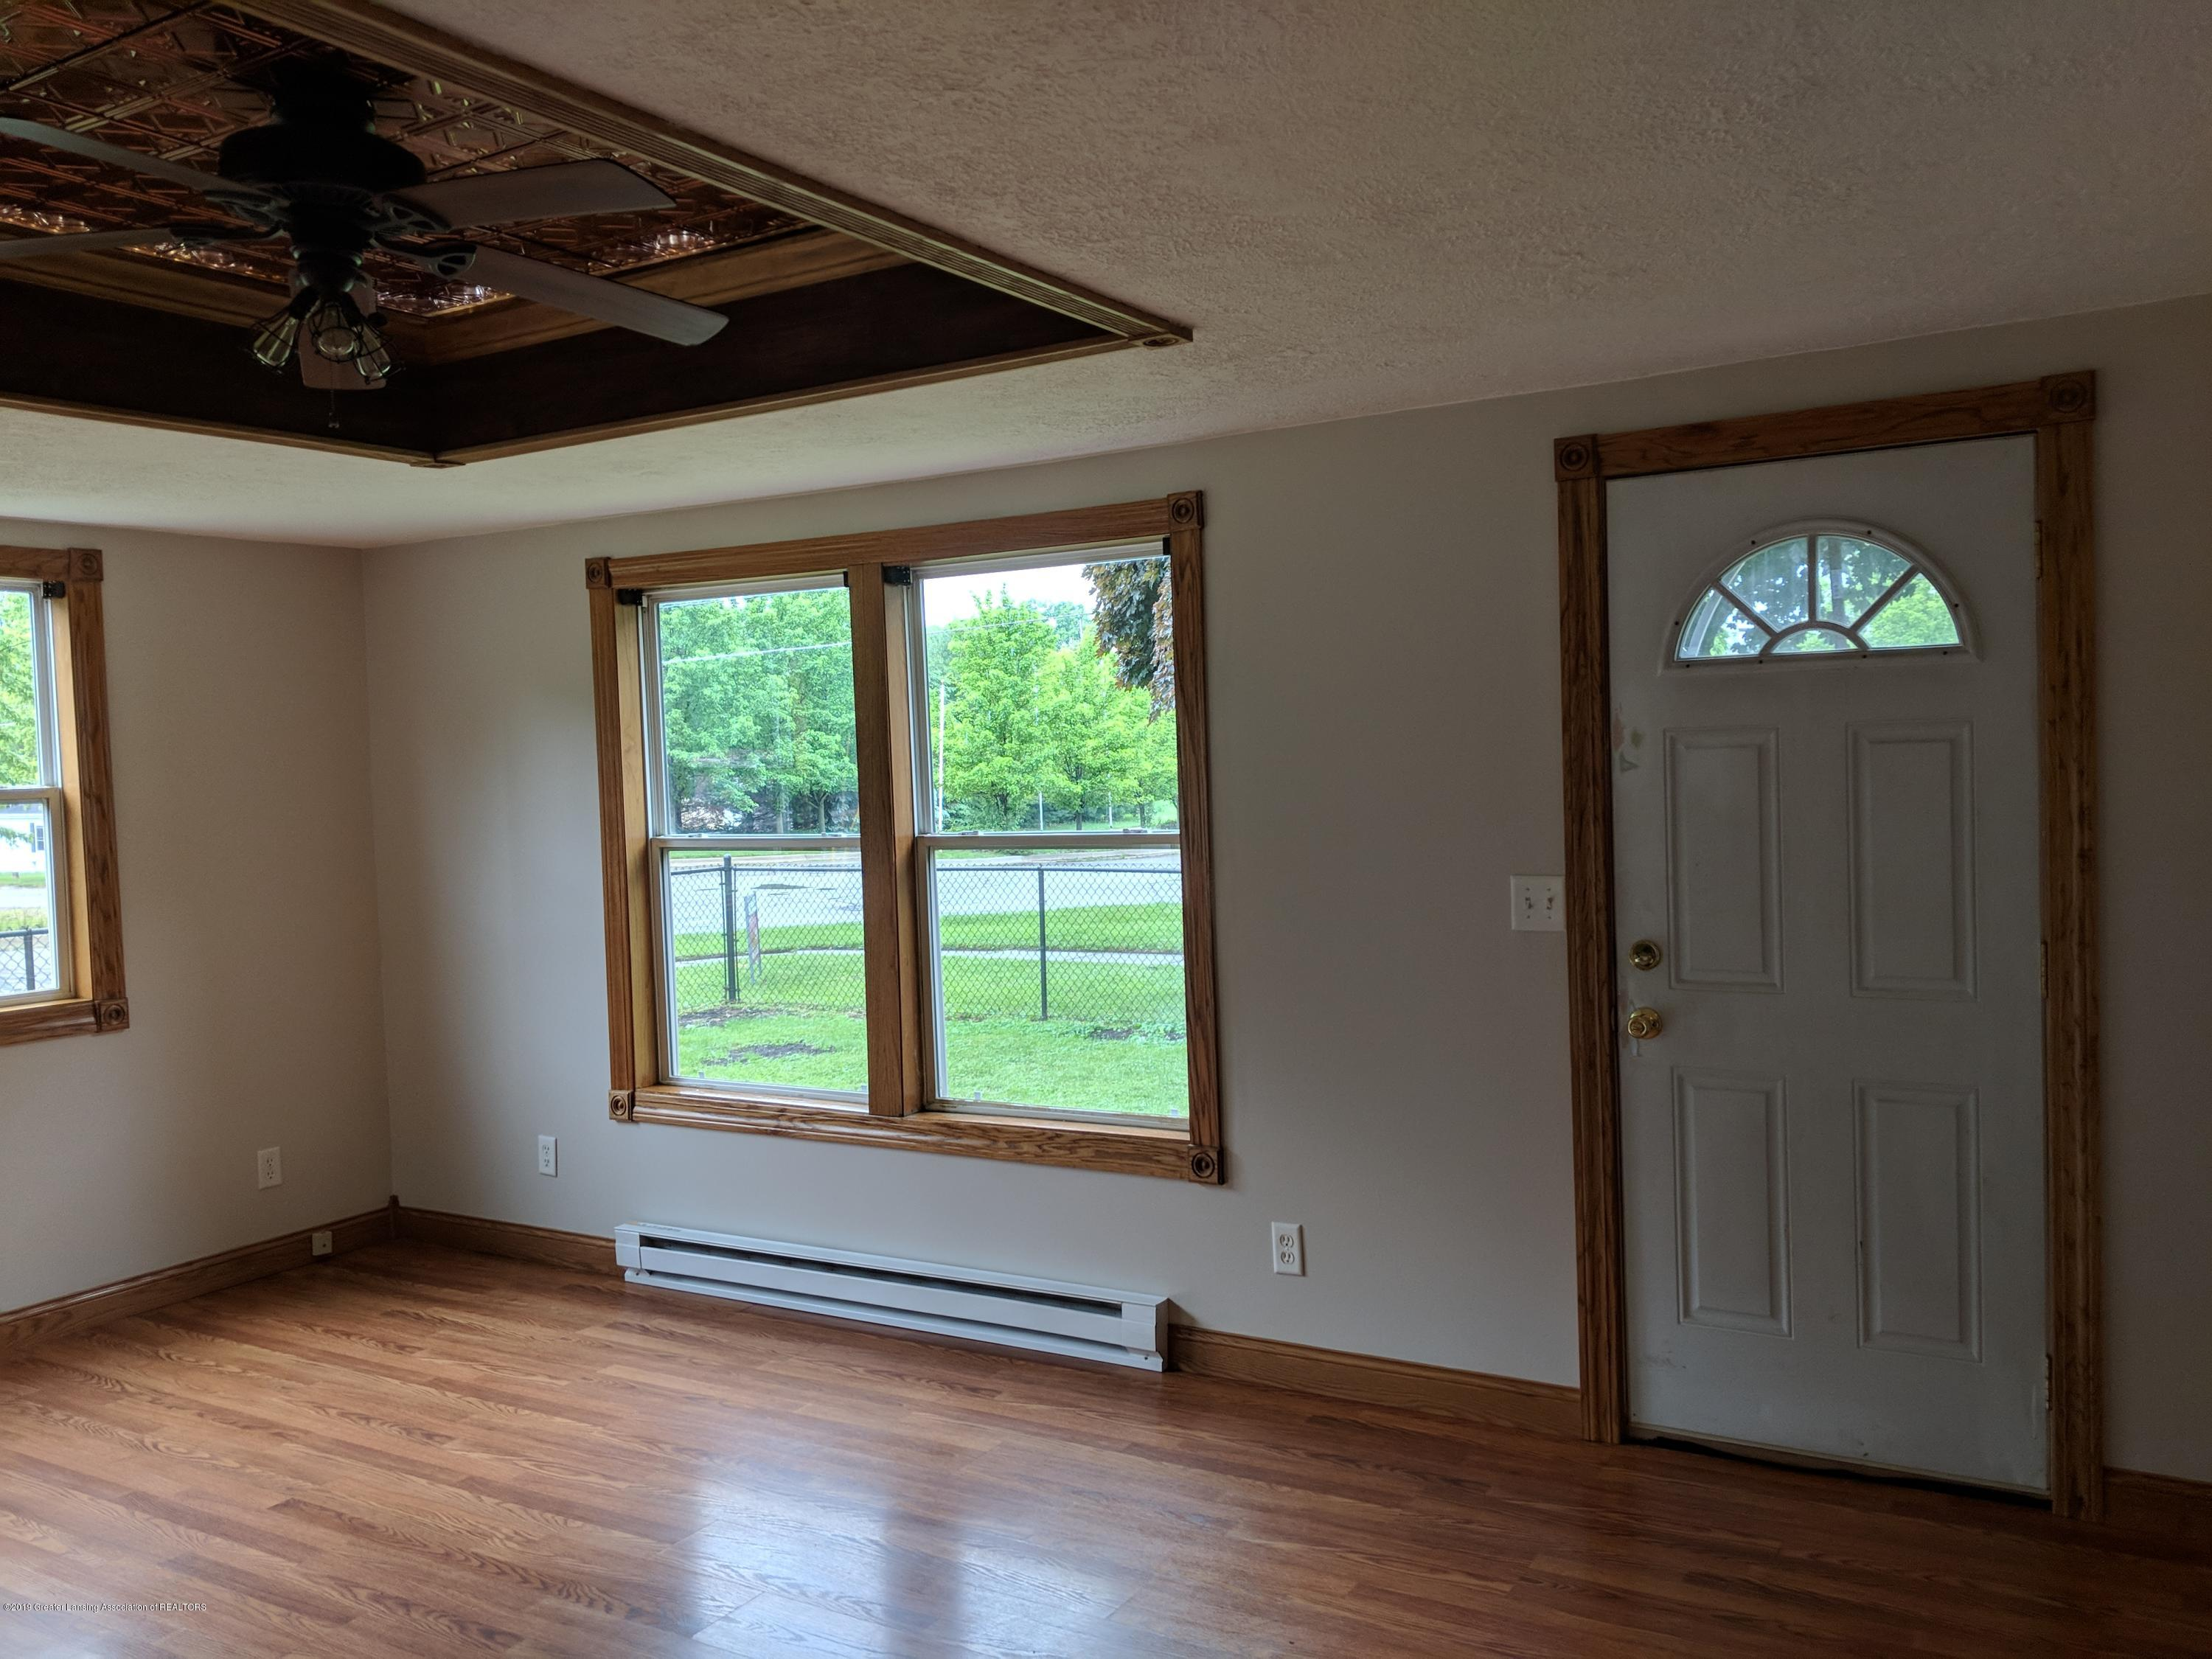 429 W Race St - Living room with custom tray ceiling - 14